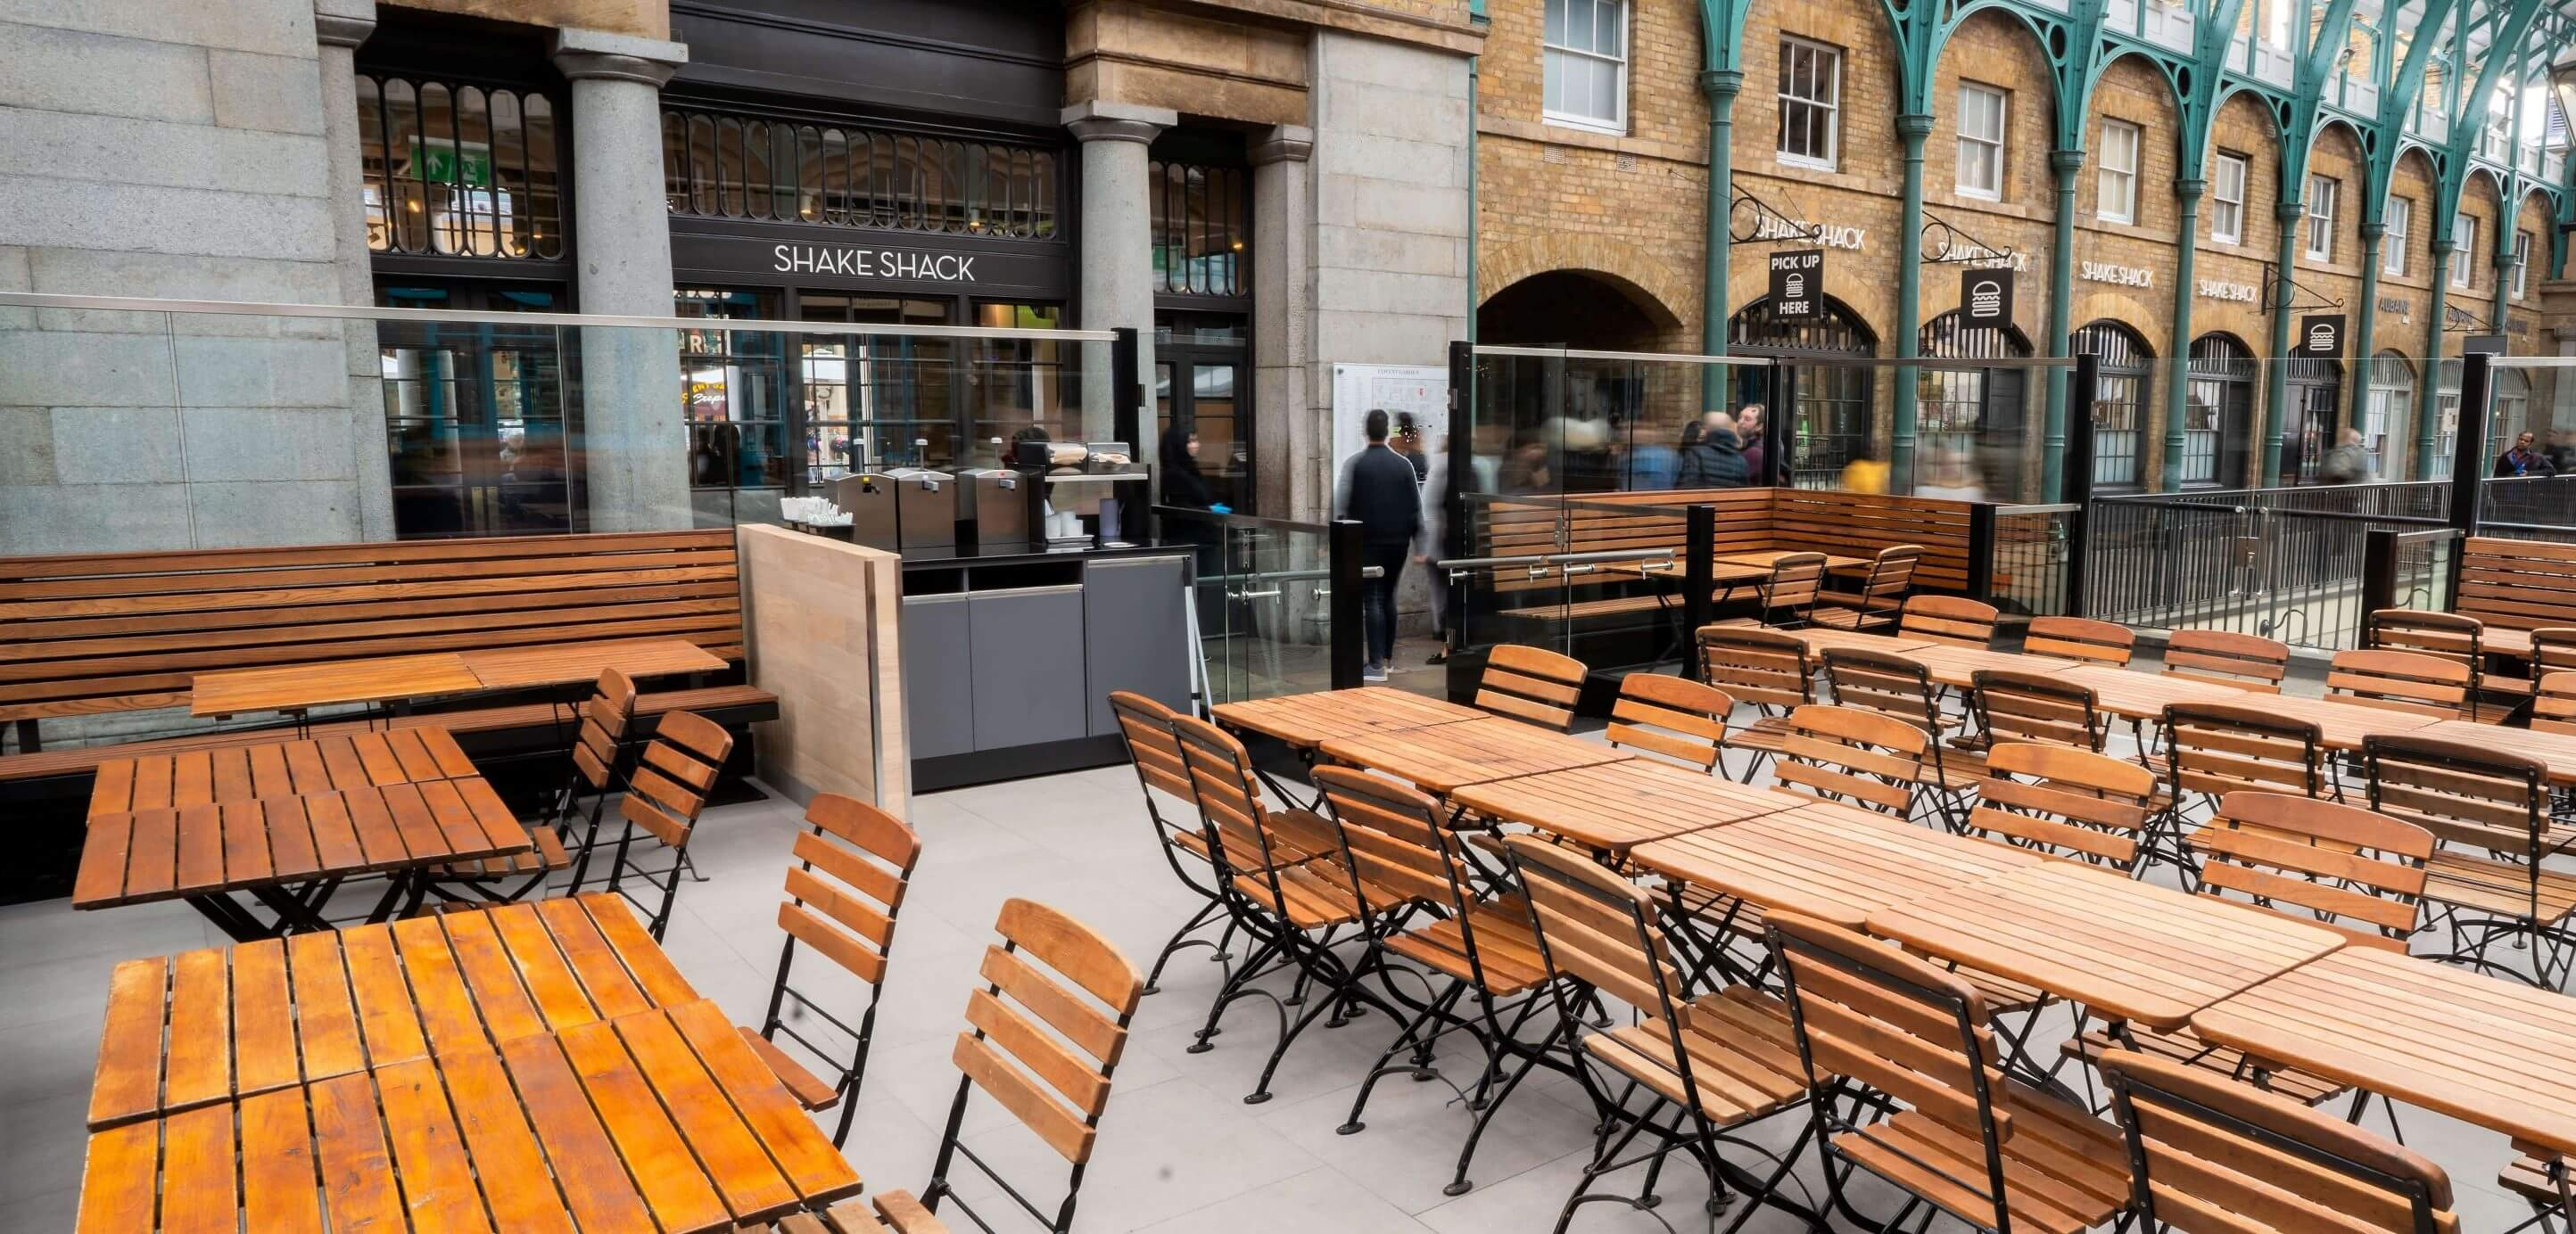 Shake Shack Covent Garden outside seating